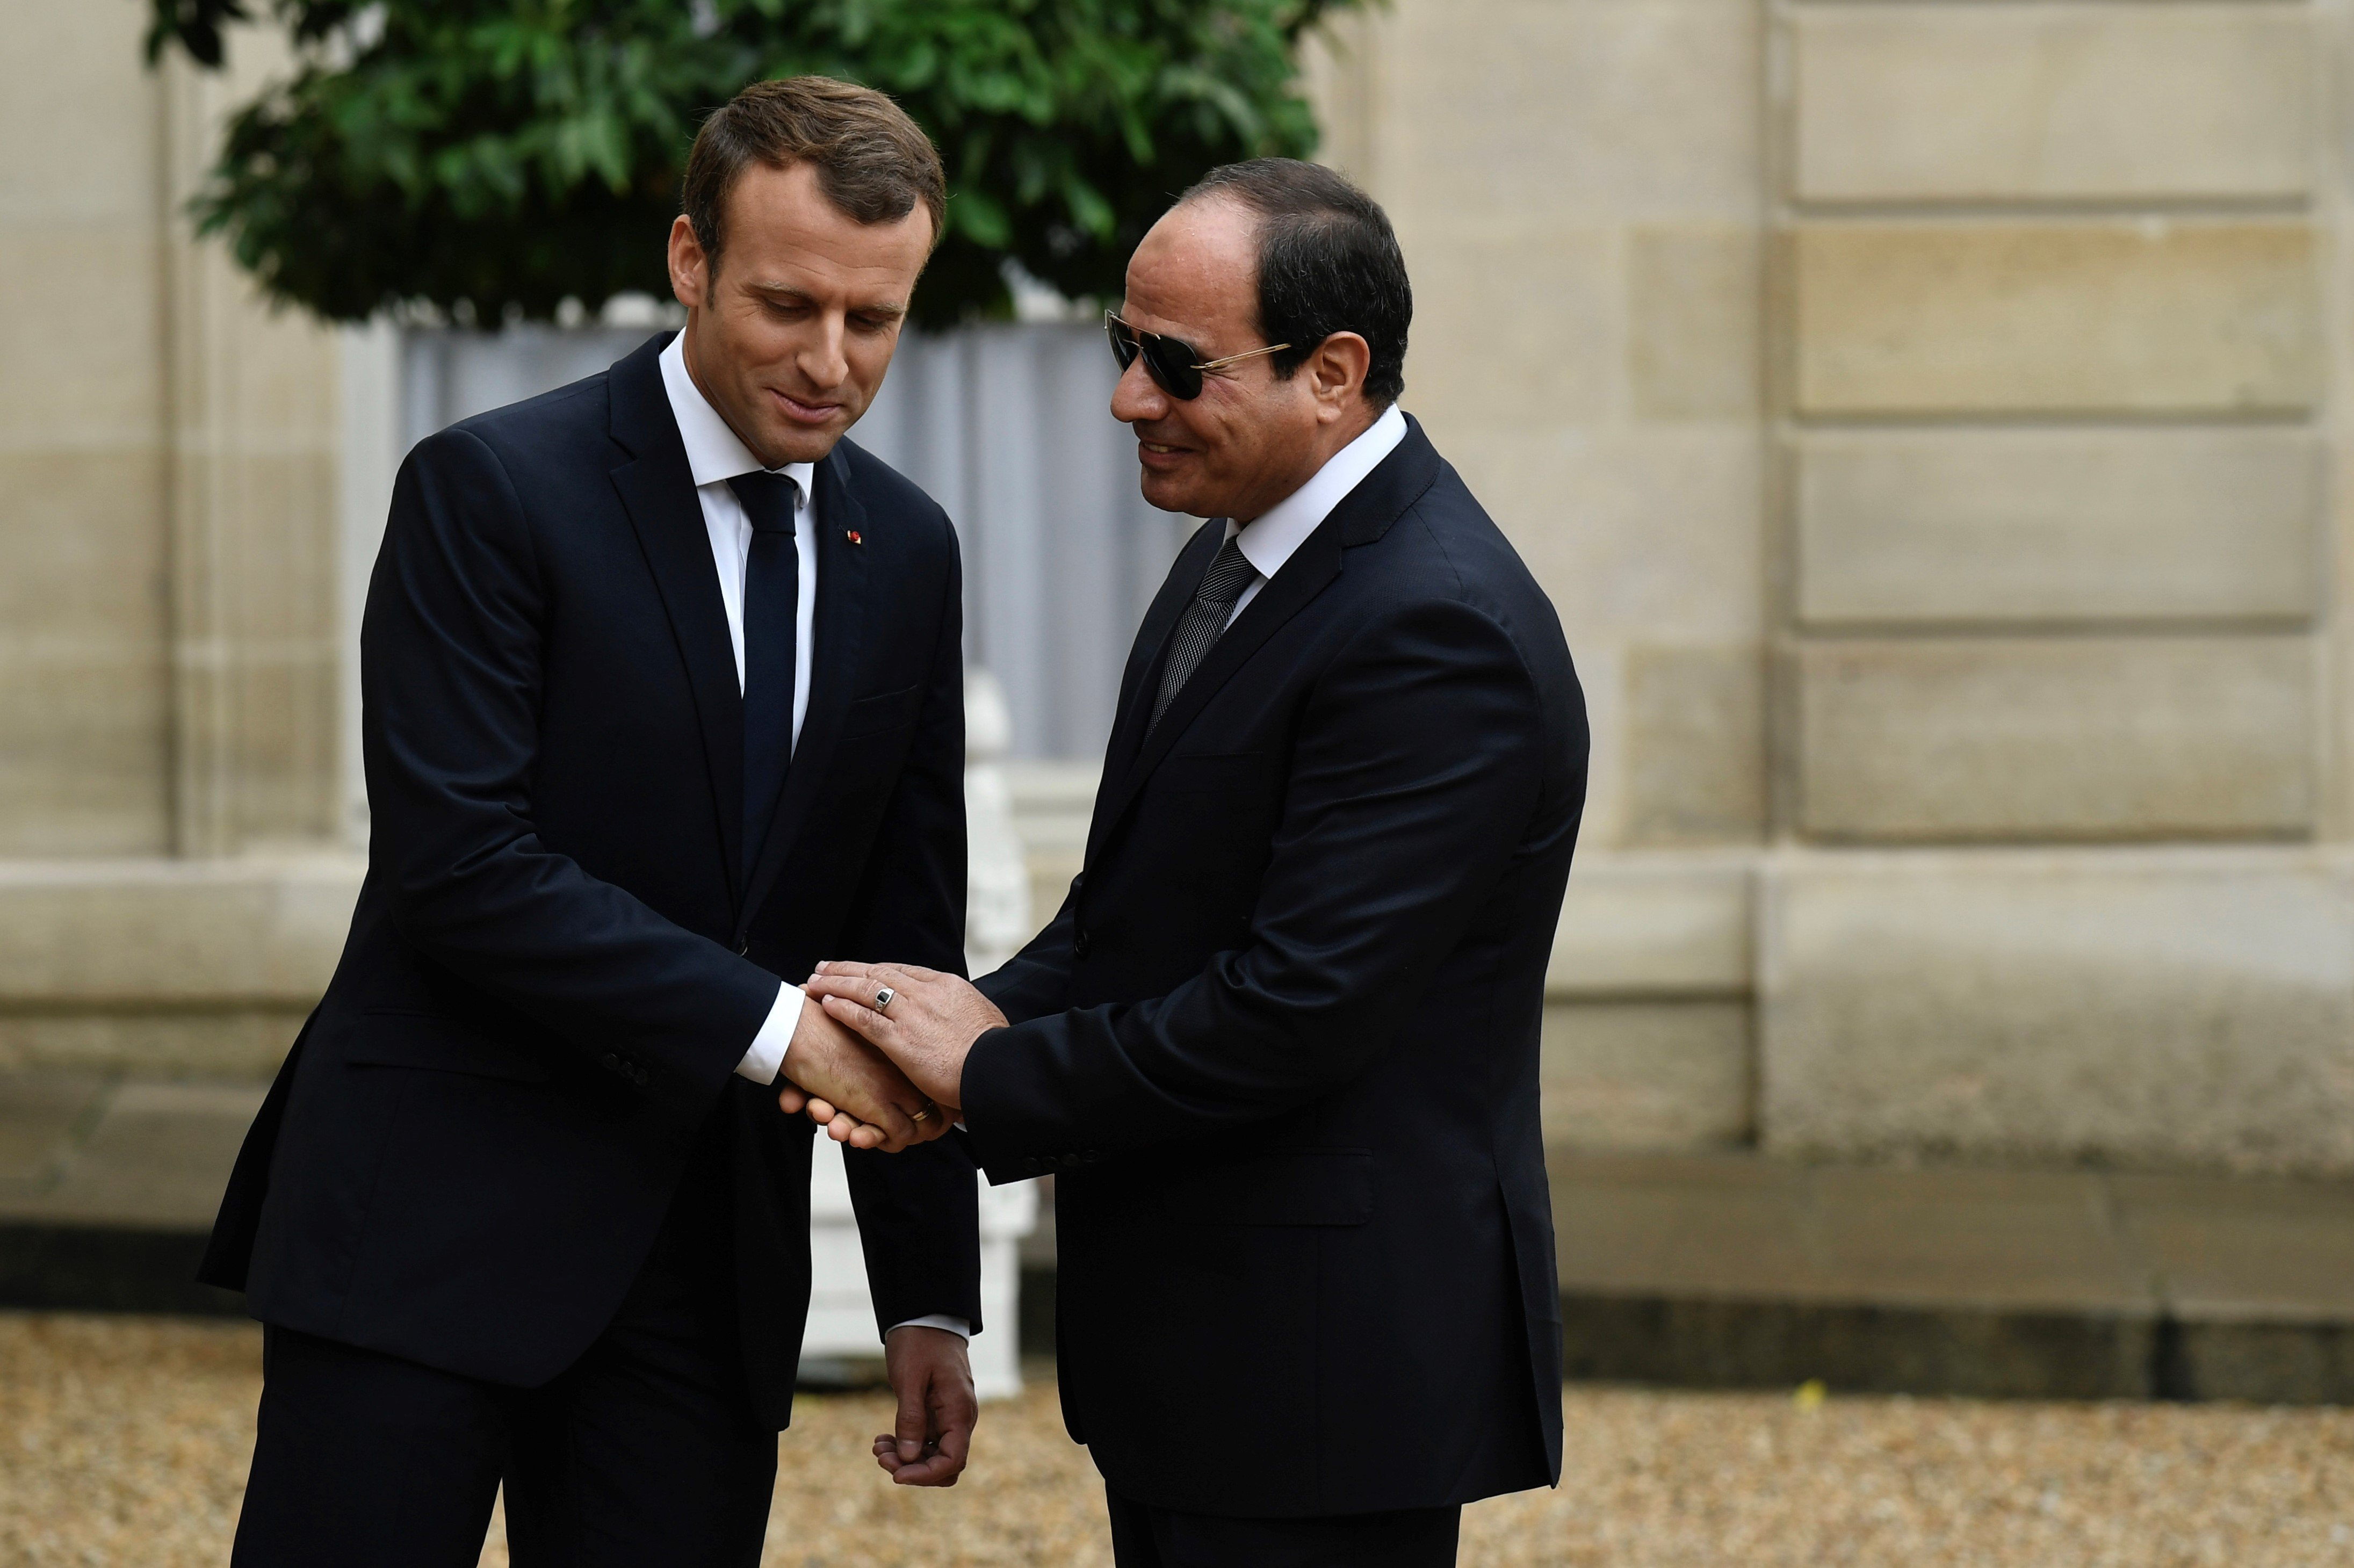 French President Emmanuel Macron (L) shakes hands with Egypt's President Abdel Fattah al-Sisi upon his arrival ahead of talks at the Elysee Palace in Paris, on 24 October, 2017 (AFP)